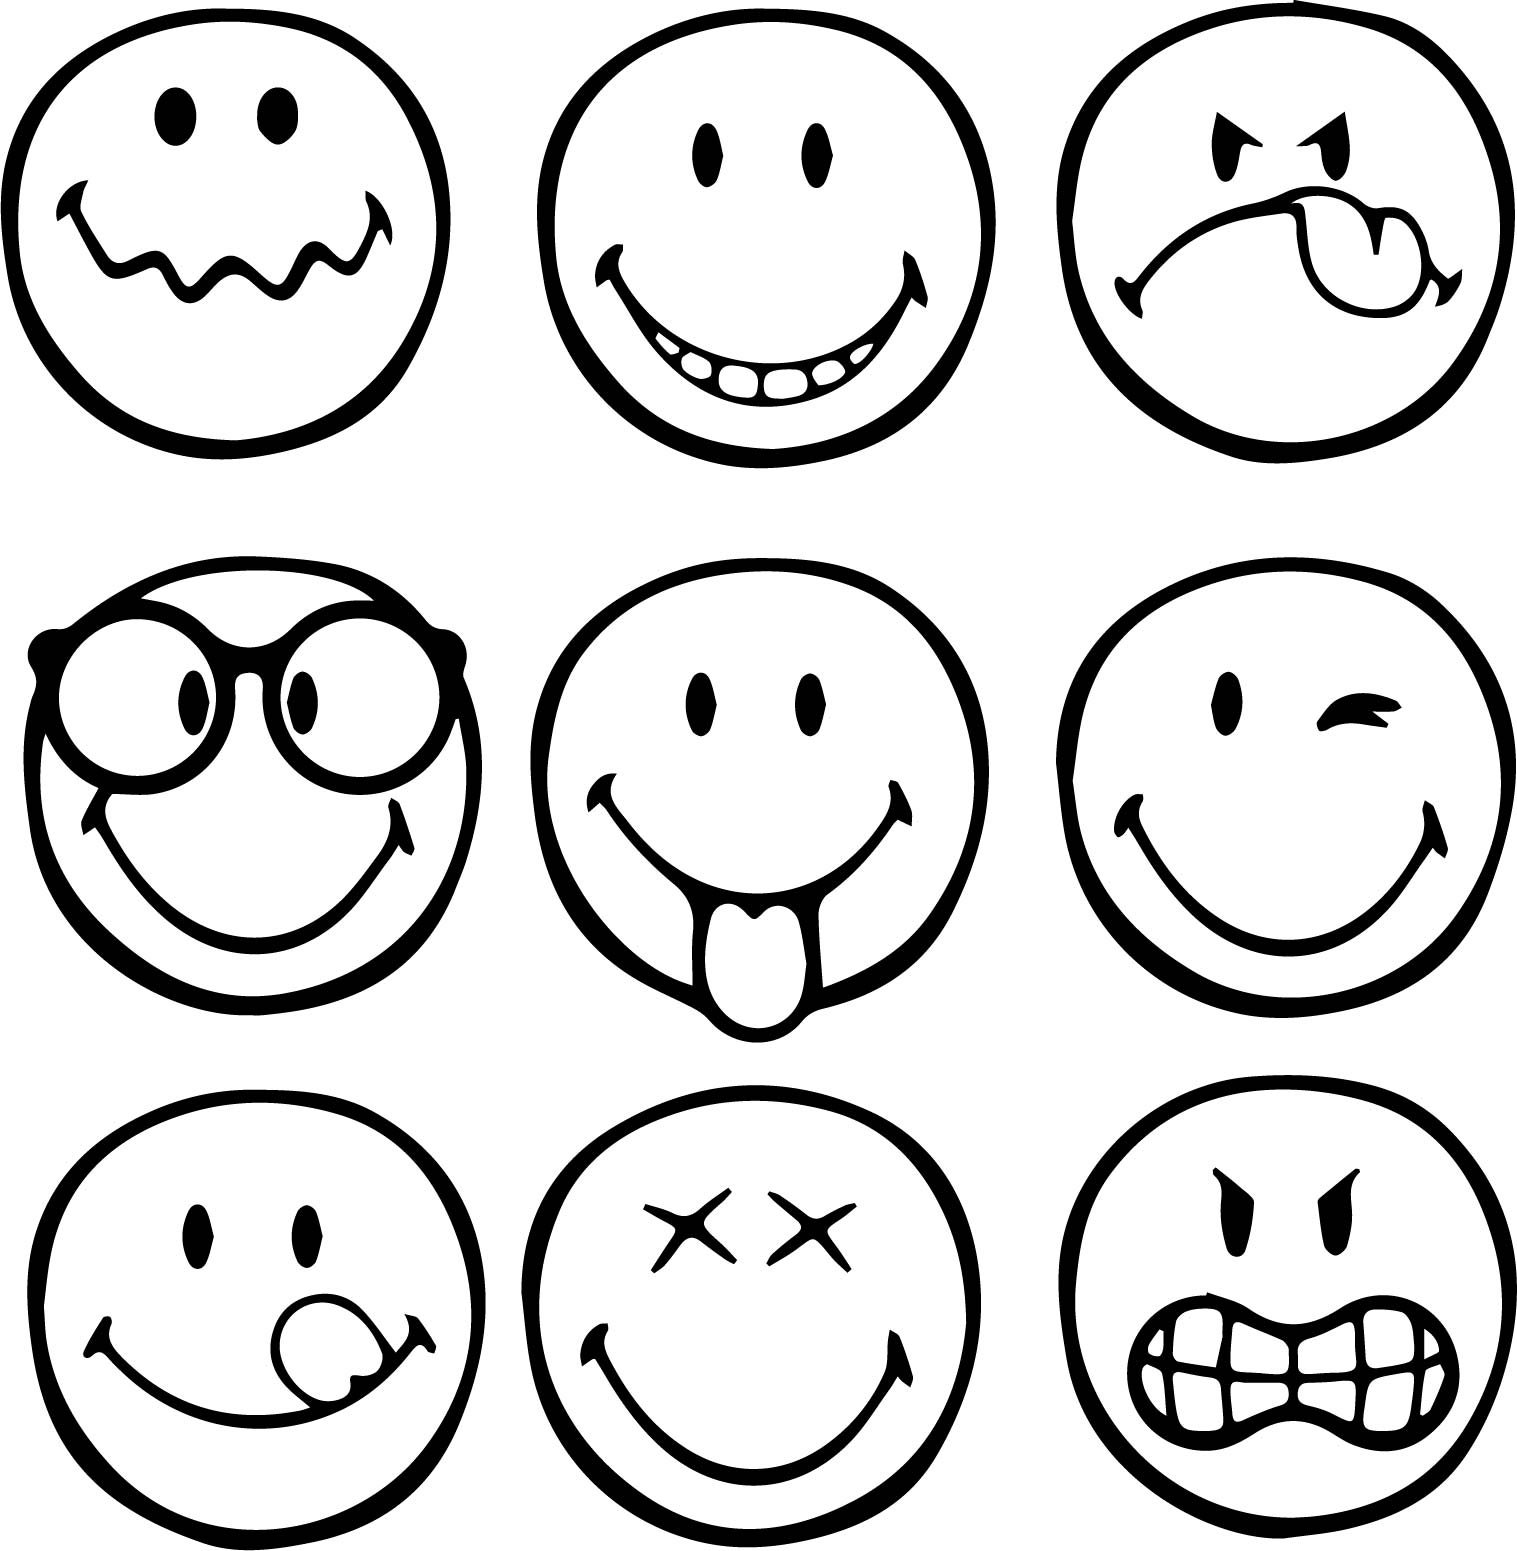 1517x1551 First Graphical Emoticons Smiley Coloring Page Wecoloringpage